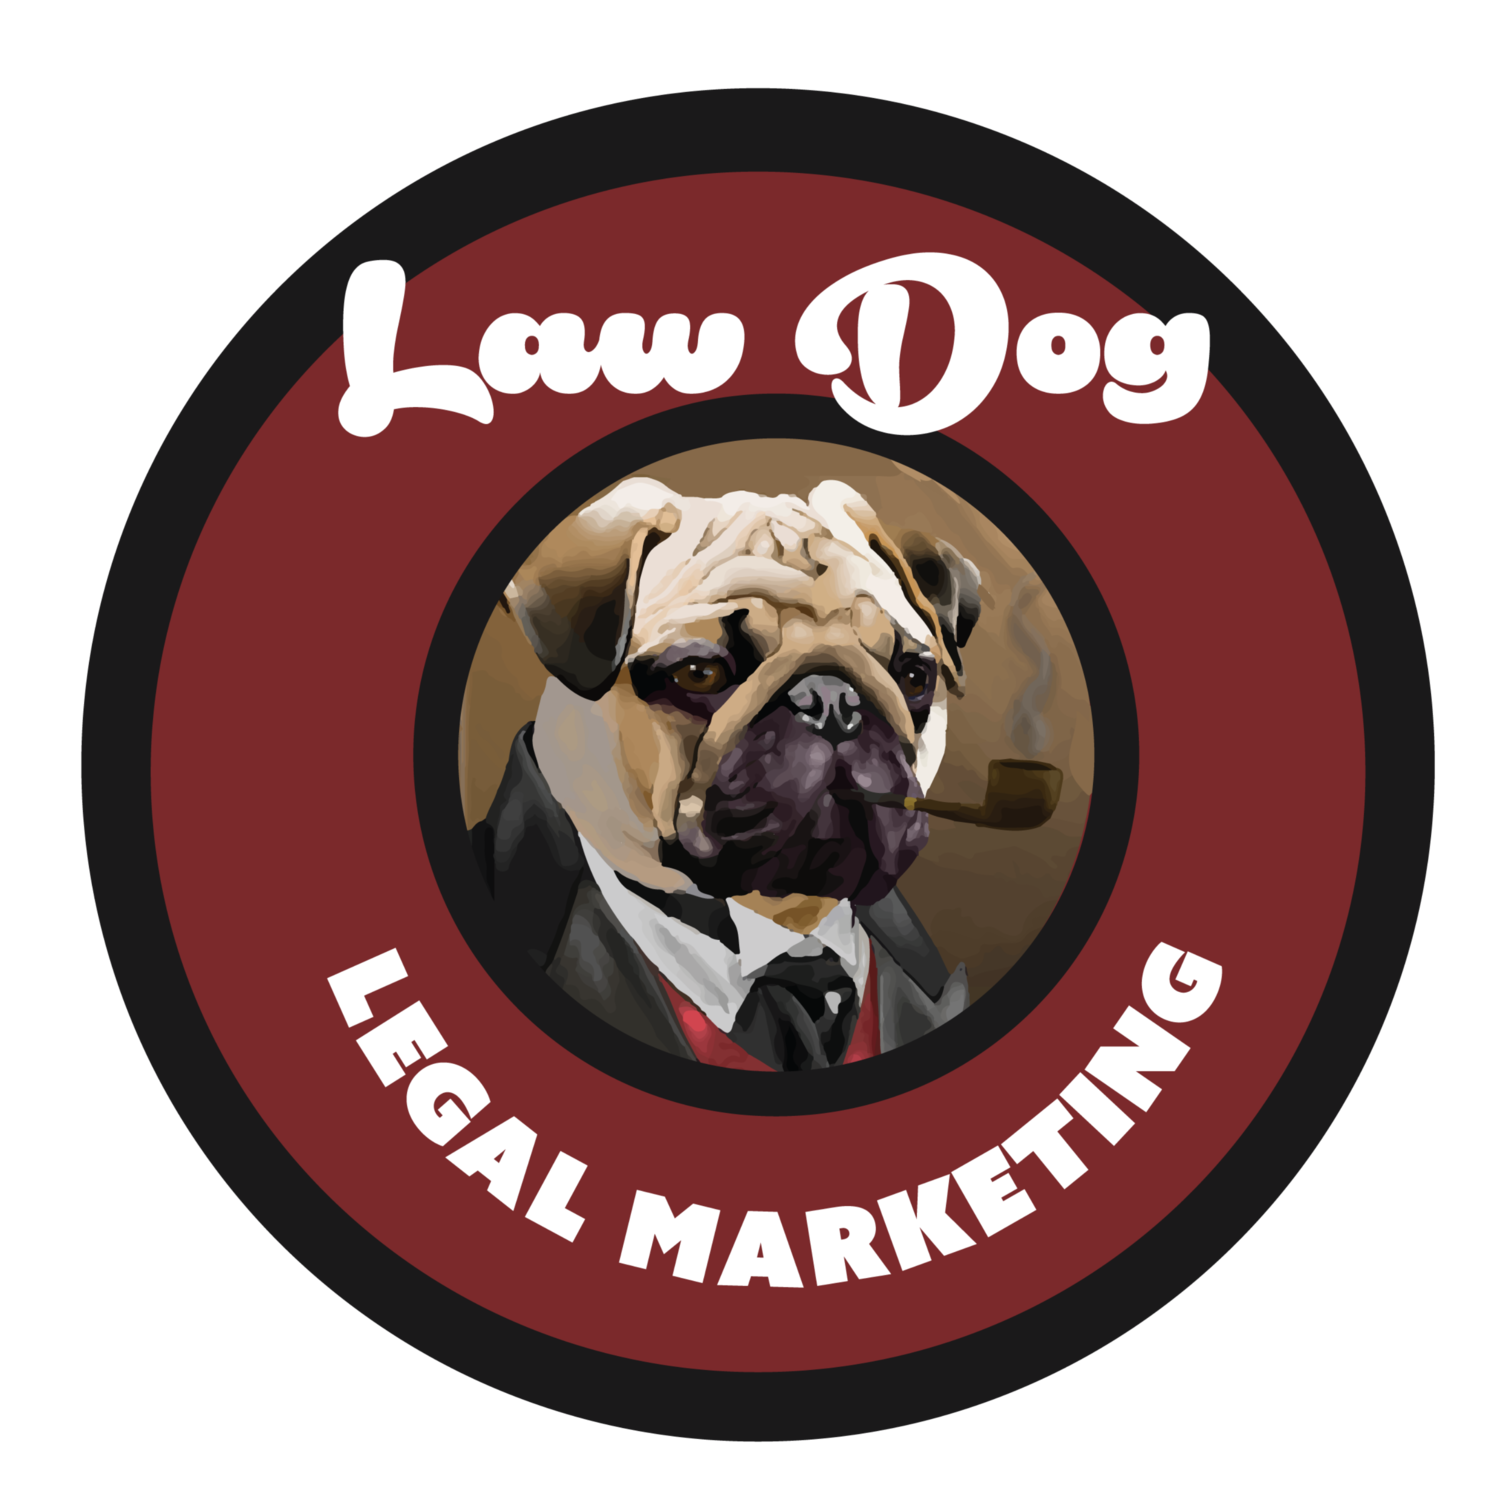 Law Firm Marketing Consultant | Use the Power of Lawyer Internet Marketing & Law Firm SEO to Win at Legal Marketing